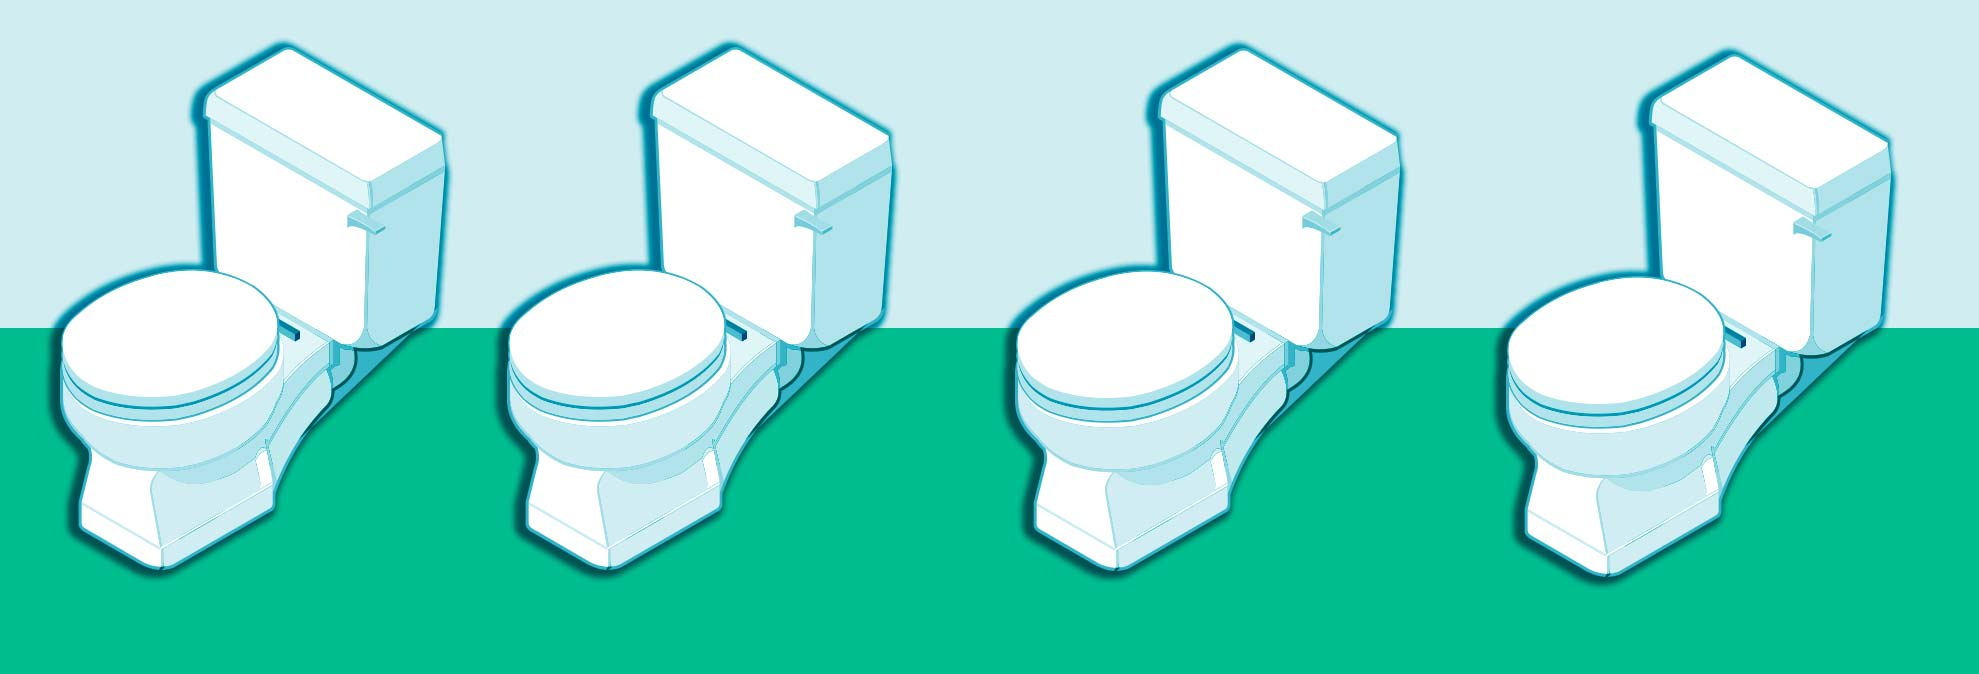 Water-Saving Toilets for $250 or Less - Consumer Reports